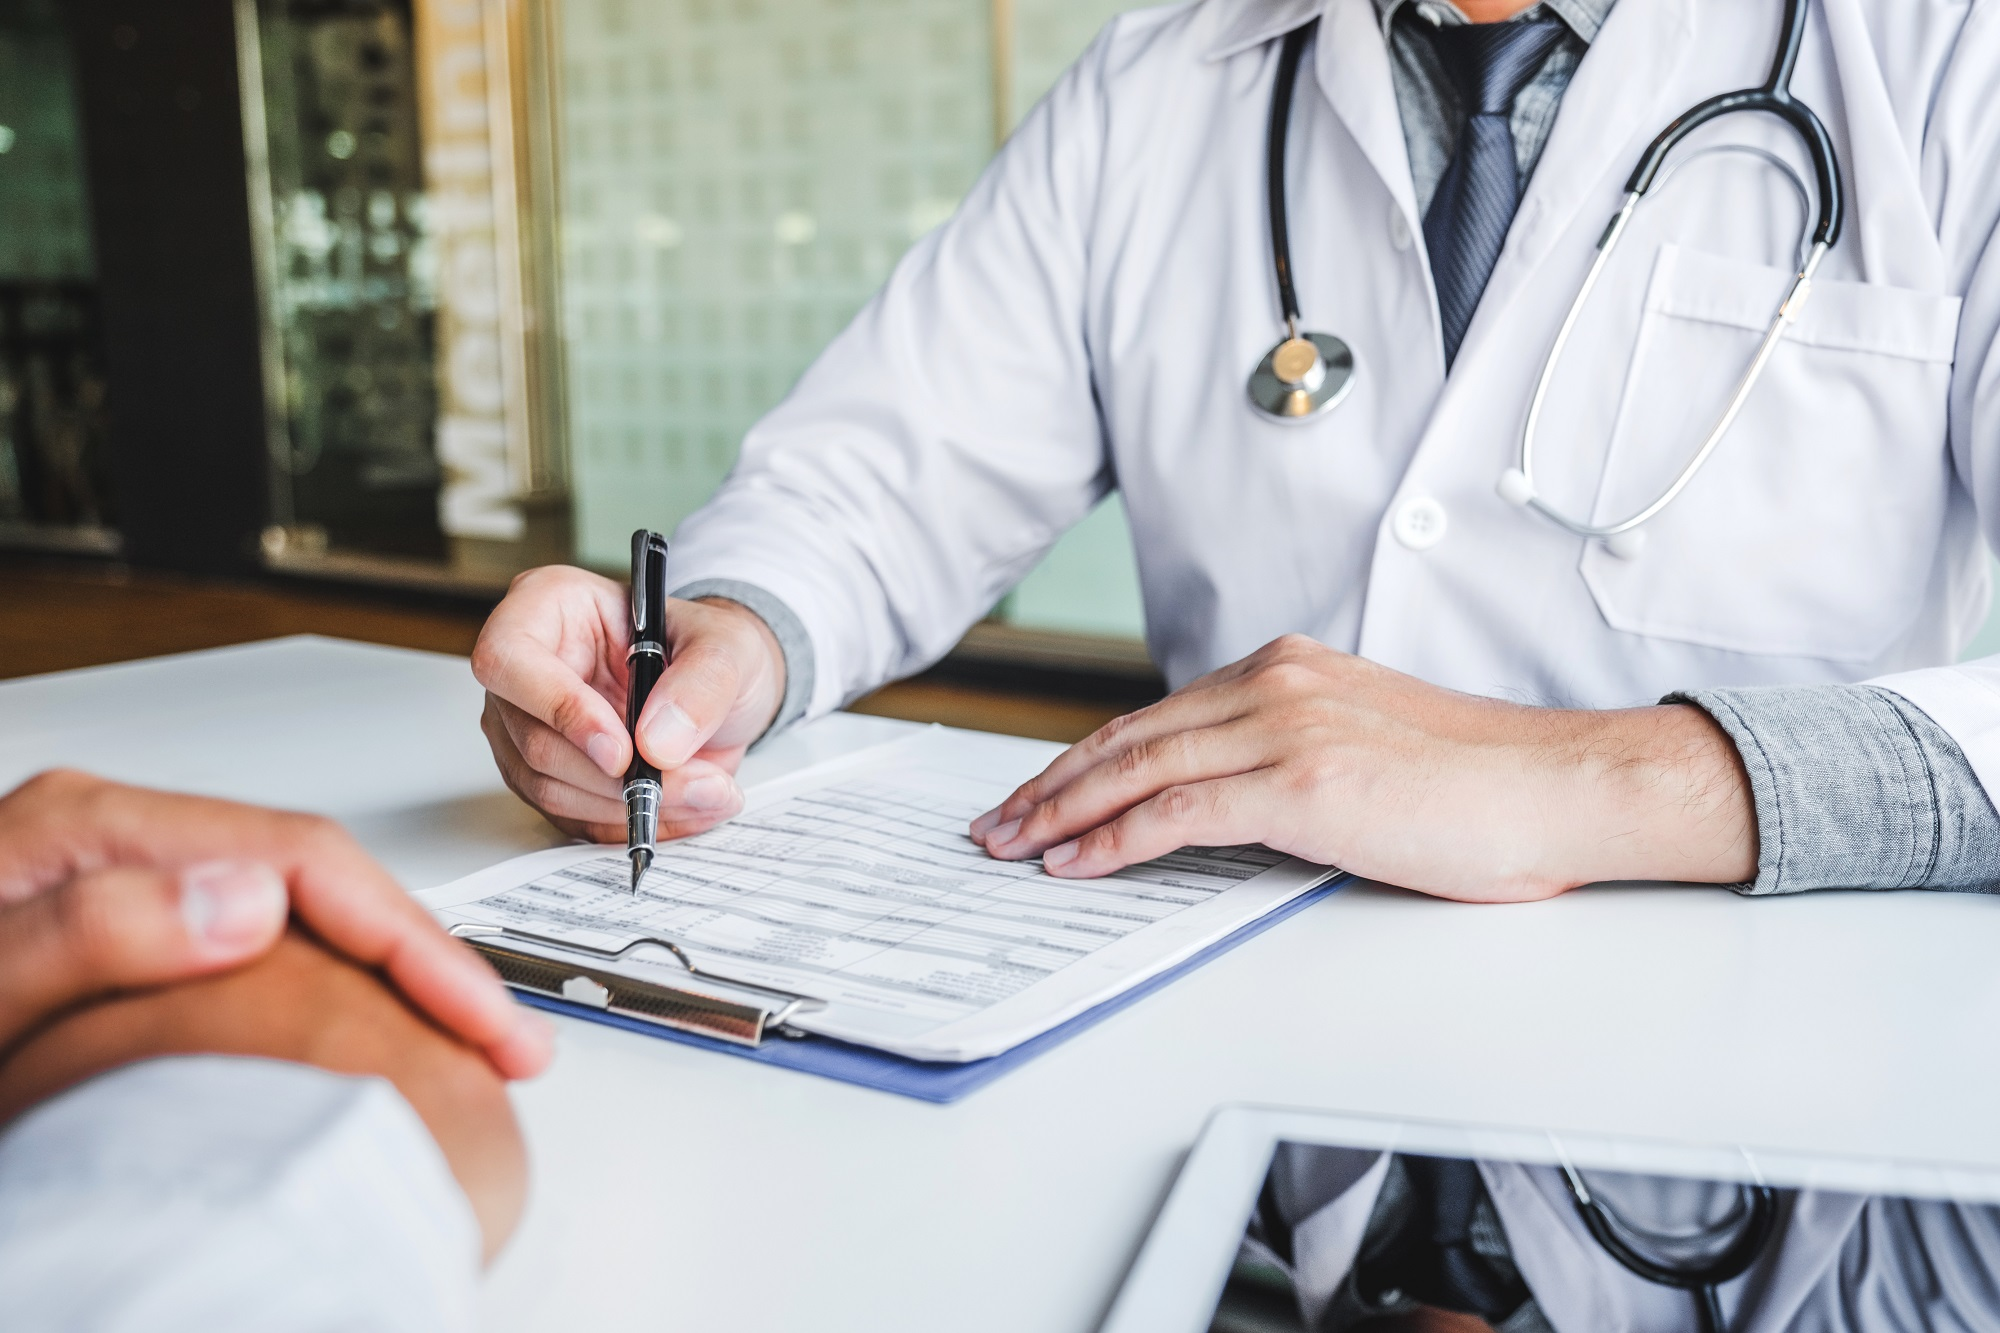 Doctors and patients consulting and diagnostic examining sit and